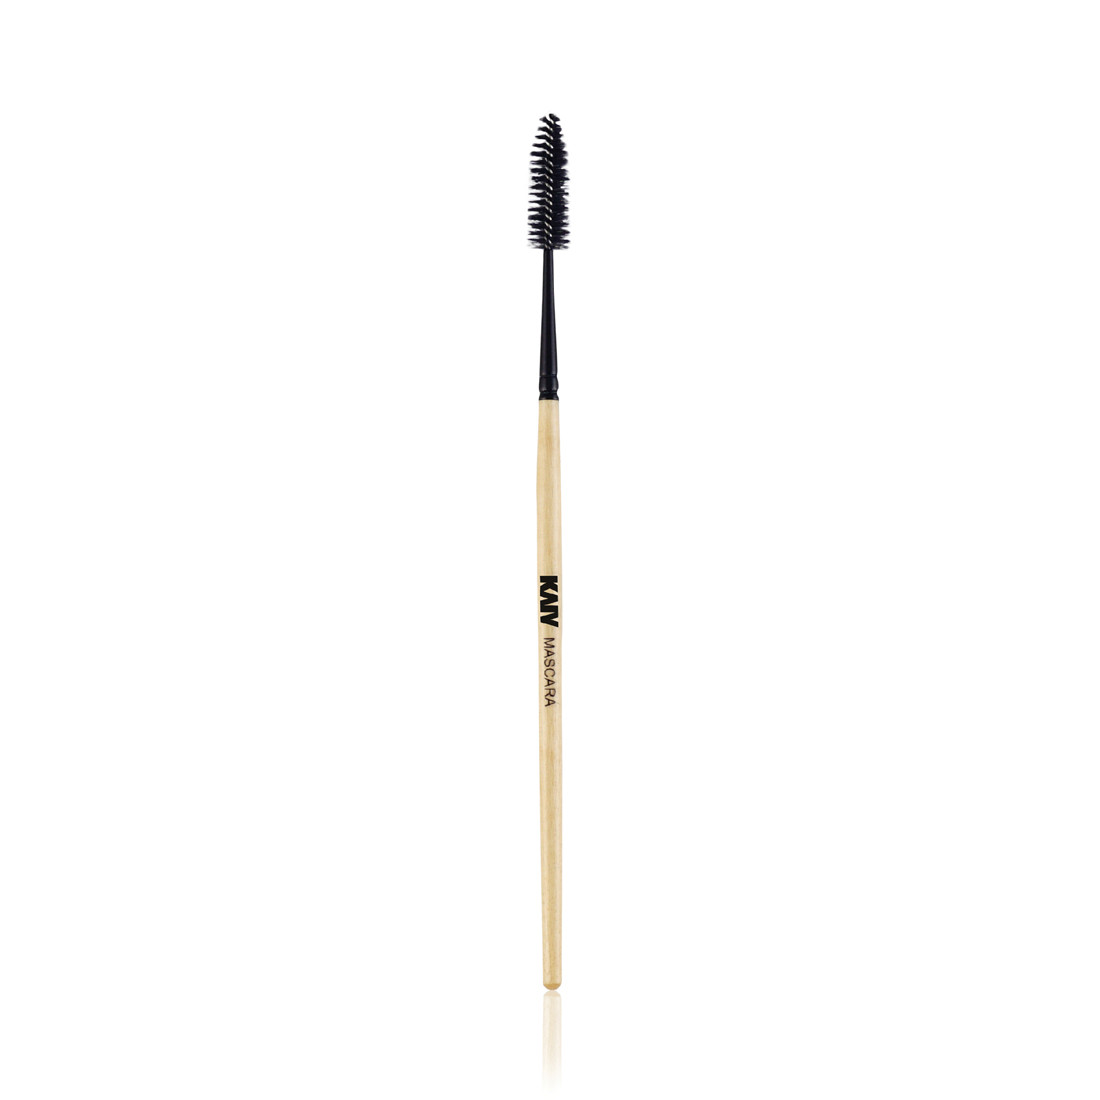 Kaiv Mascara Brush (Pack of 1)